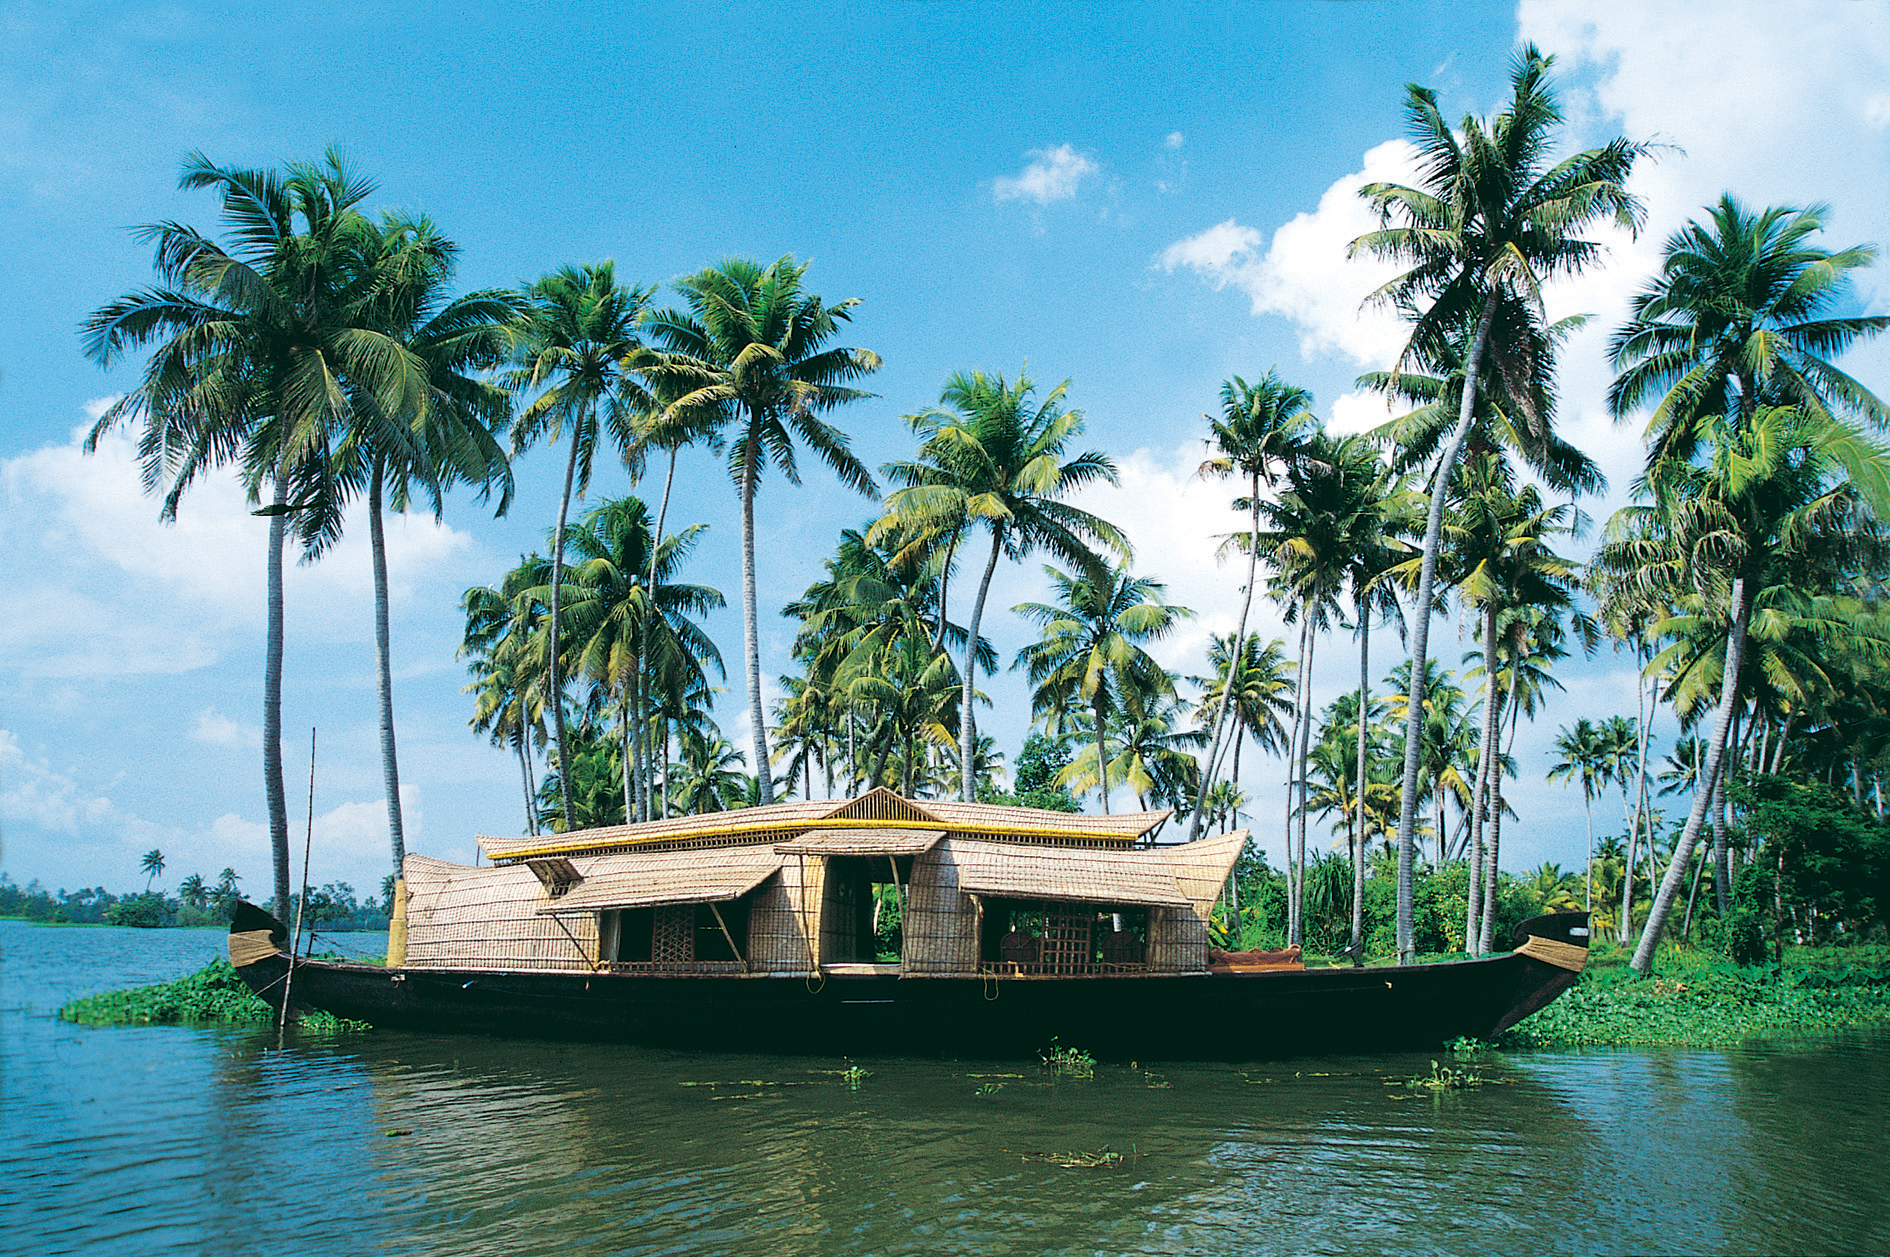 Download High Resolution Pictures Kerala Tourism Kerala Tourism